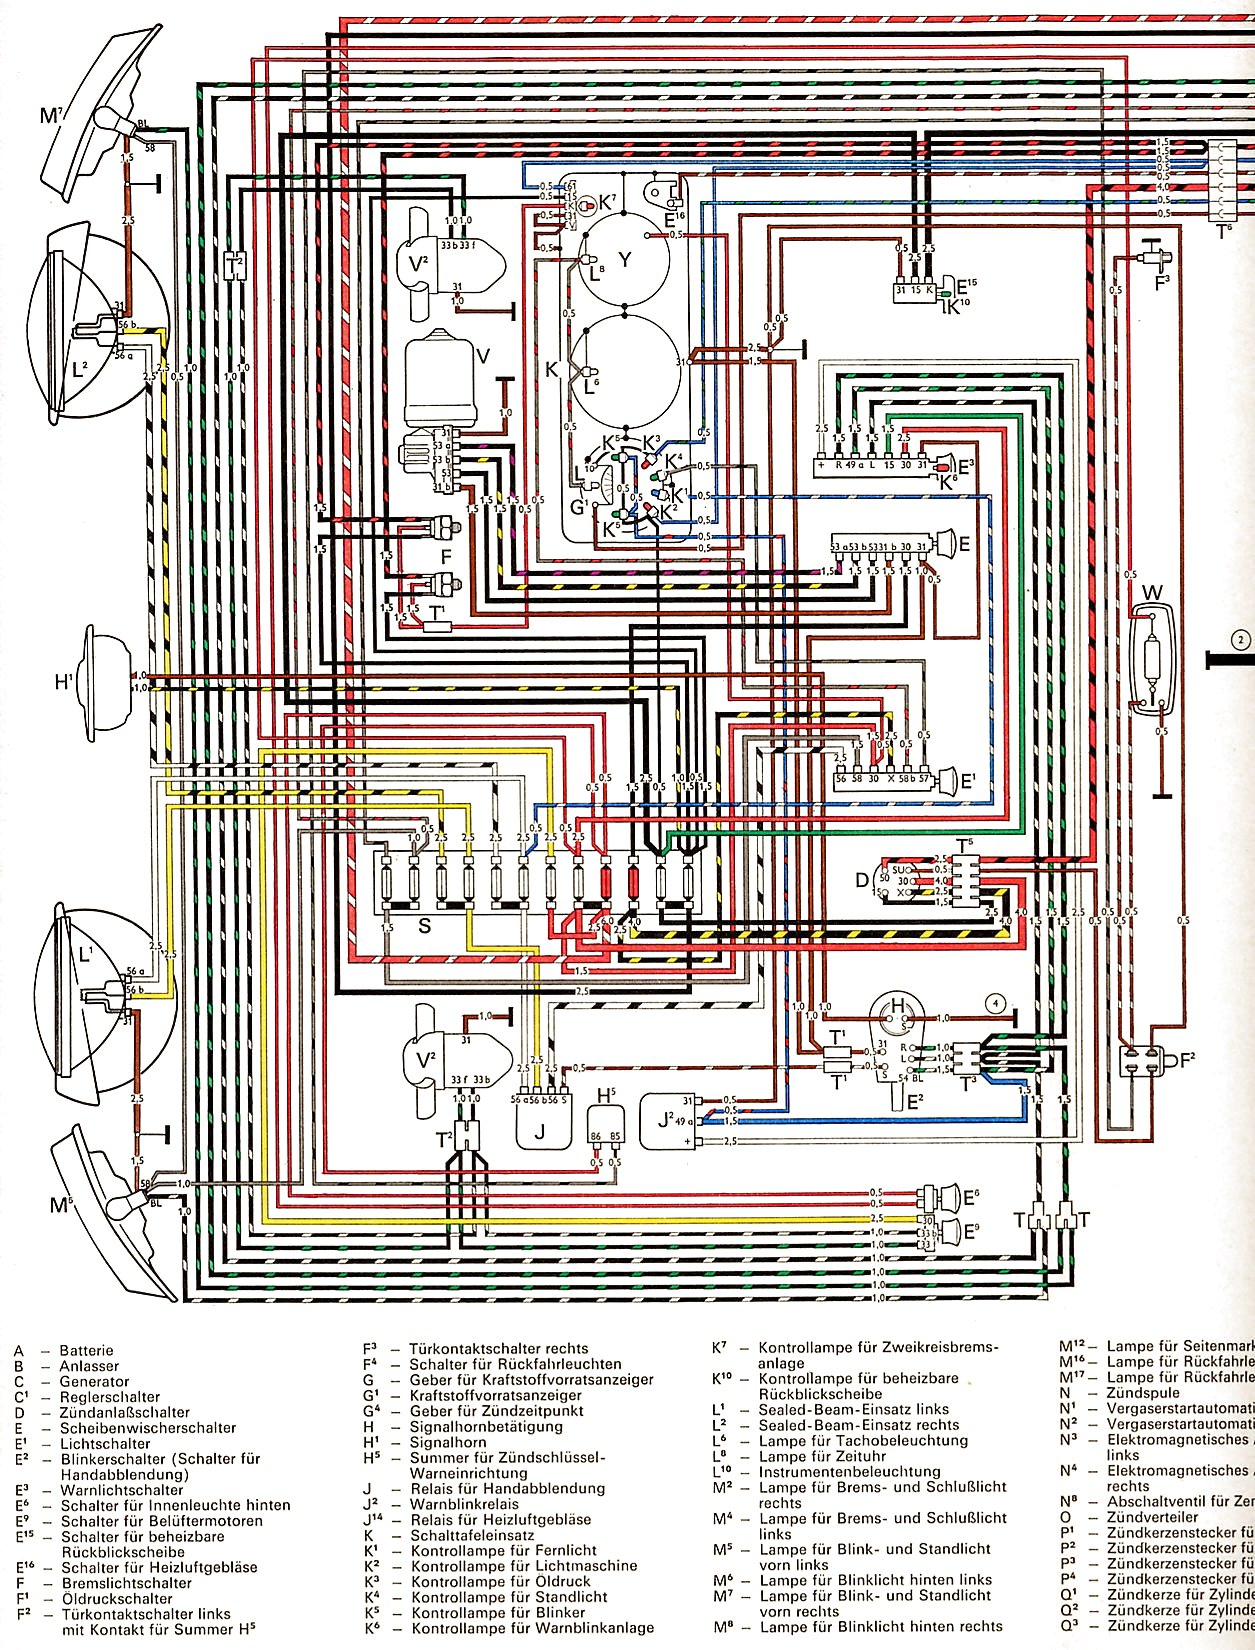 Transporter_USA_from_August_1971 1 how to read vw wiring diagrams basic motorcycle wiring diagram Wiring Harness Diagram at sewacar.co